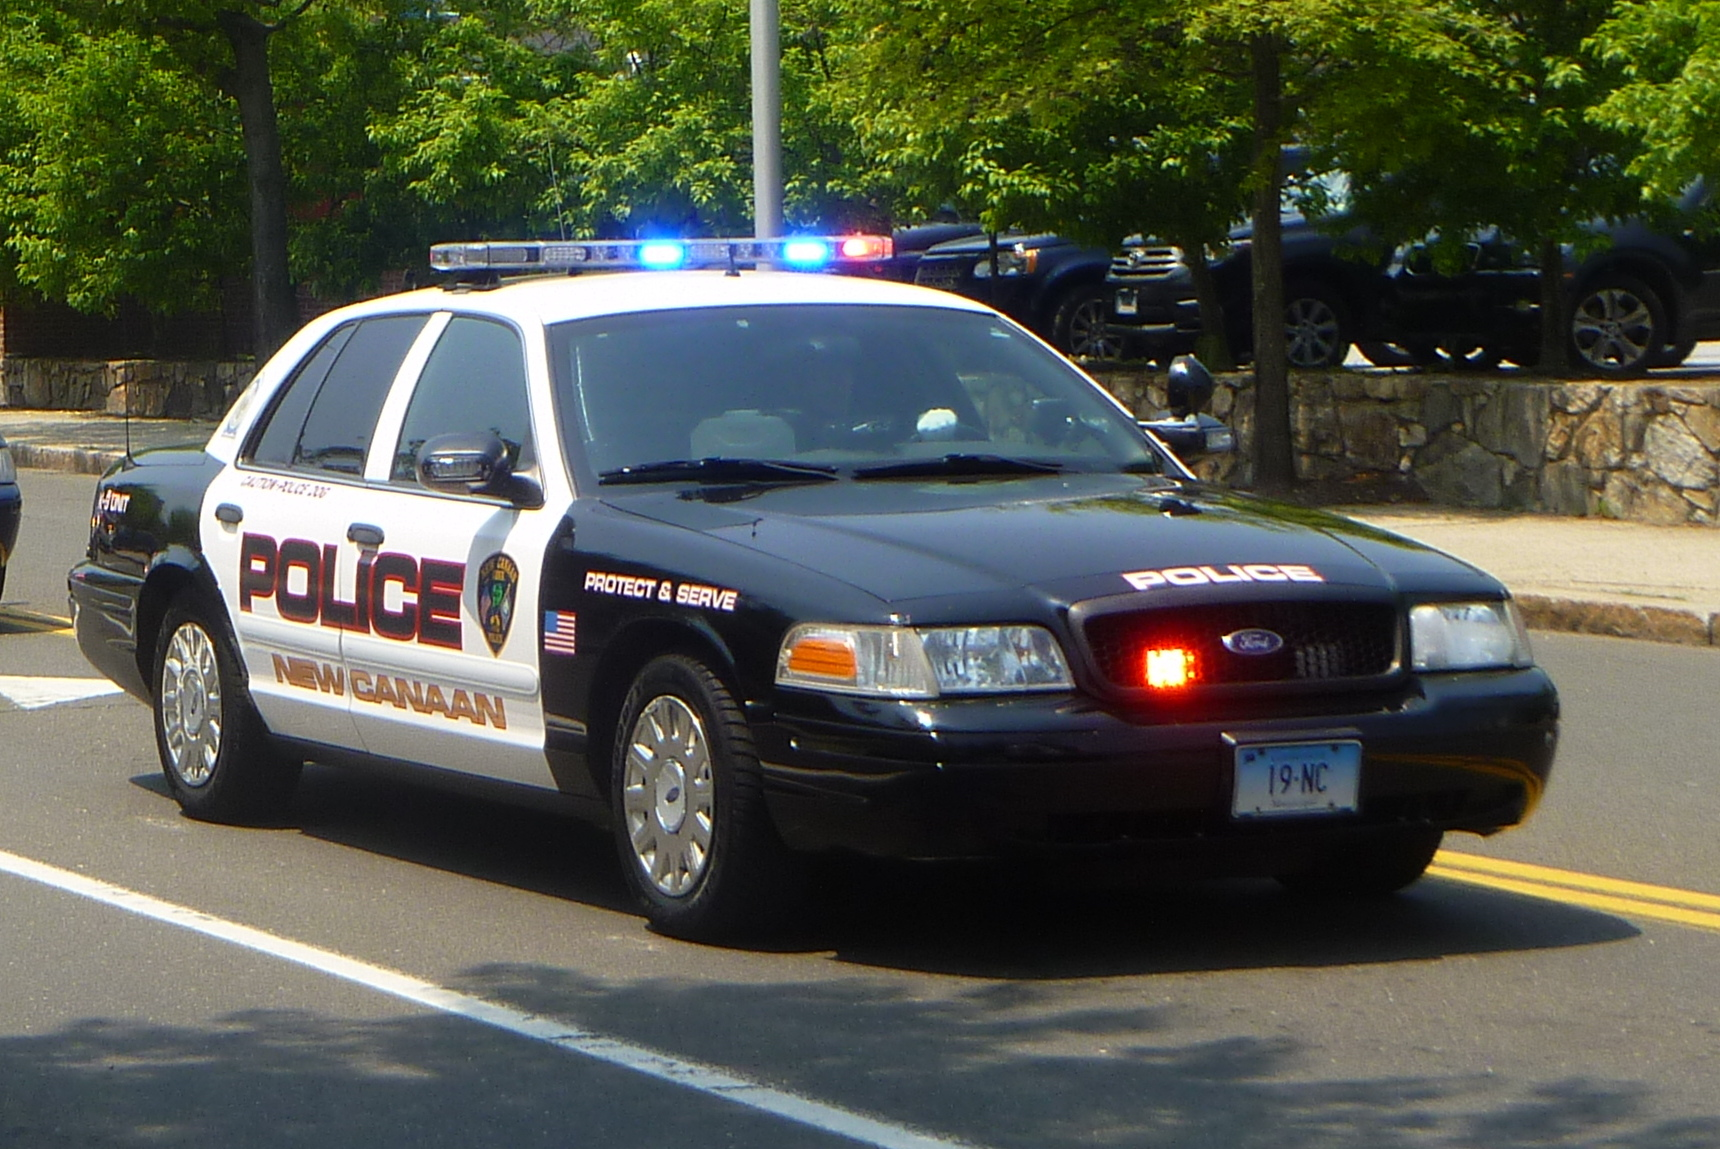 New Canaan Police are looking for whoever stole about $50,000 in copper downspouts from a town residence.